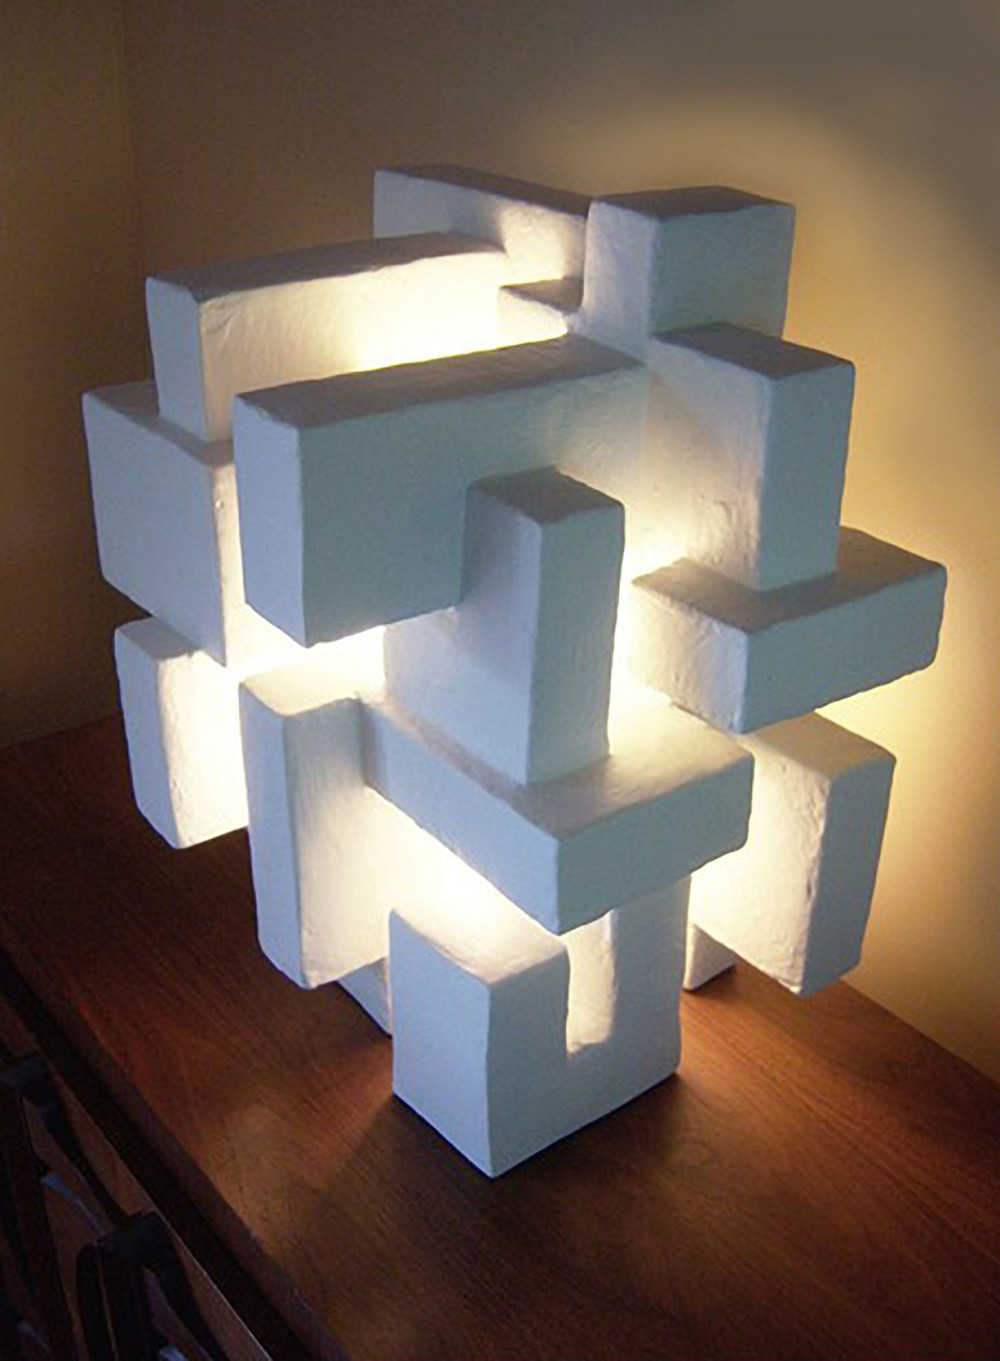 ABITARE LIGHT SCULPTURE, commission for hotel project, New York